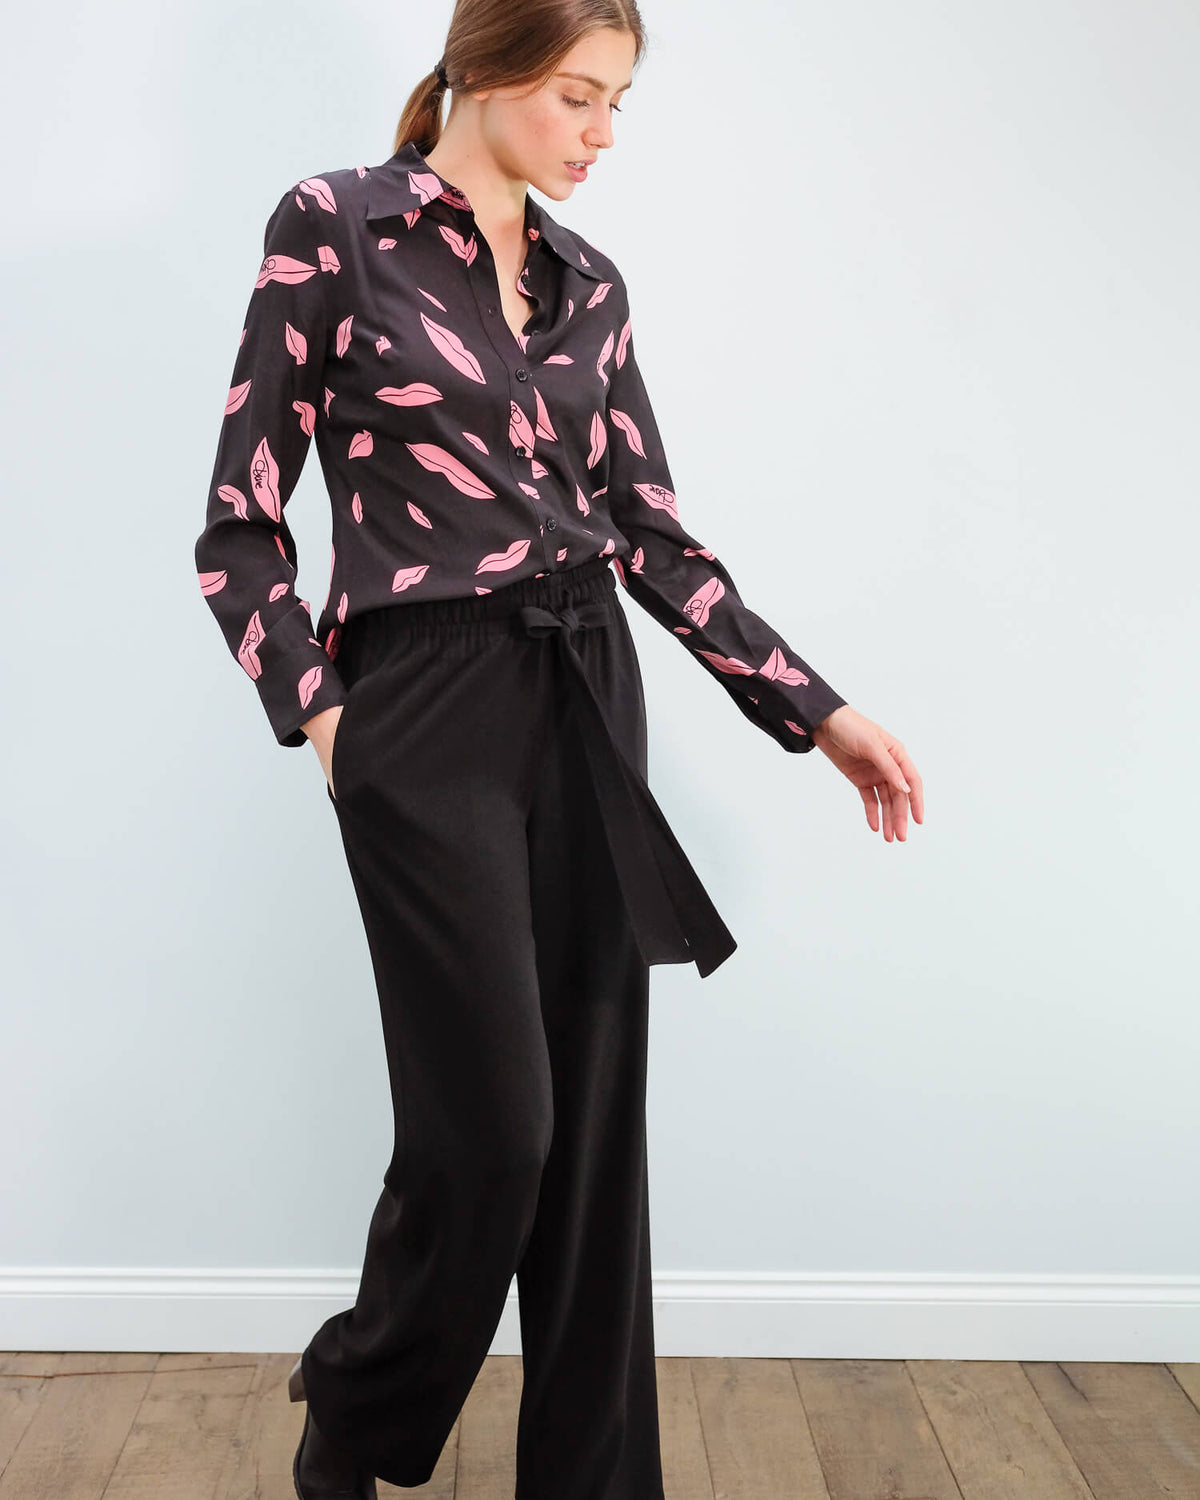 DVF Samson top in falling lips black